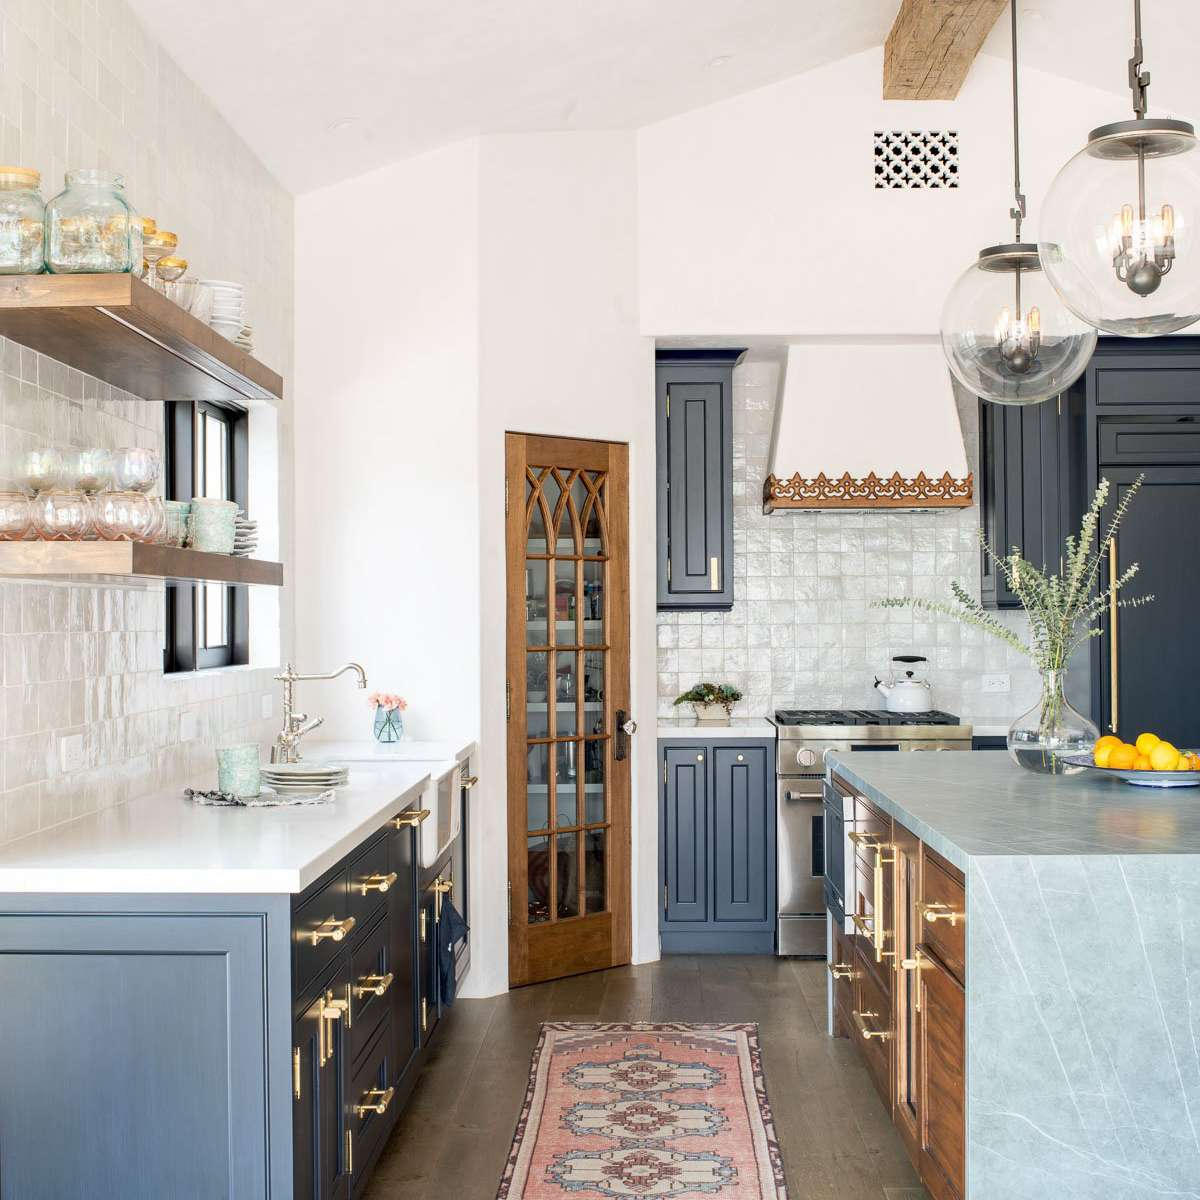 A kitchen with a marble bar